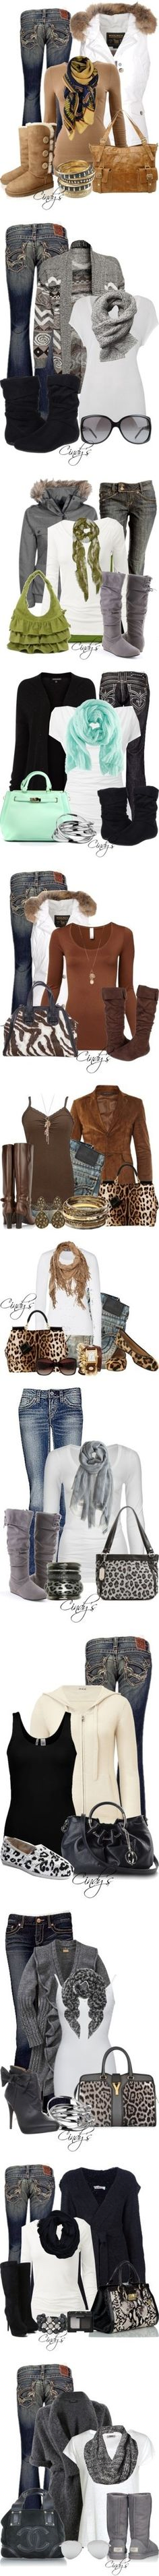 Find More at => http://feedproxy.google.com/~r/amazingoutfits/~3/cnB3UY0786s/AmazingOutfits.page